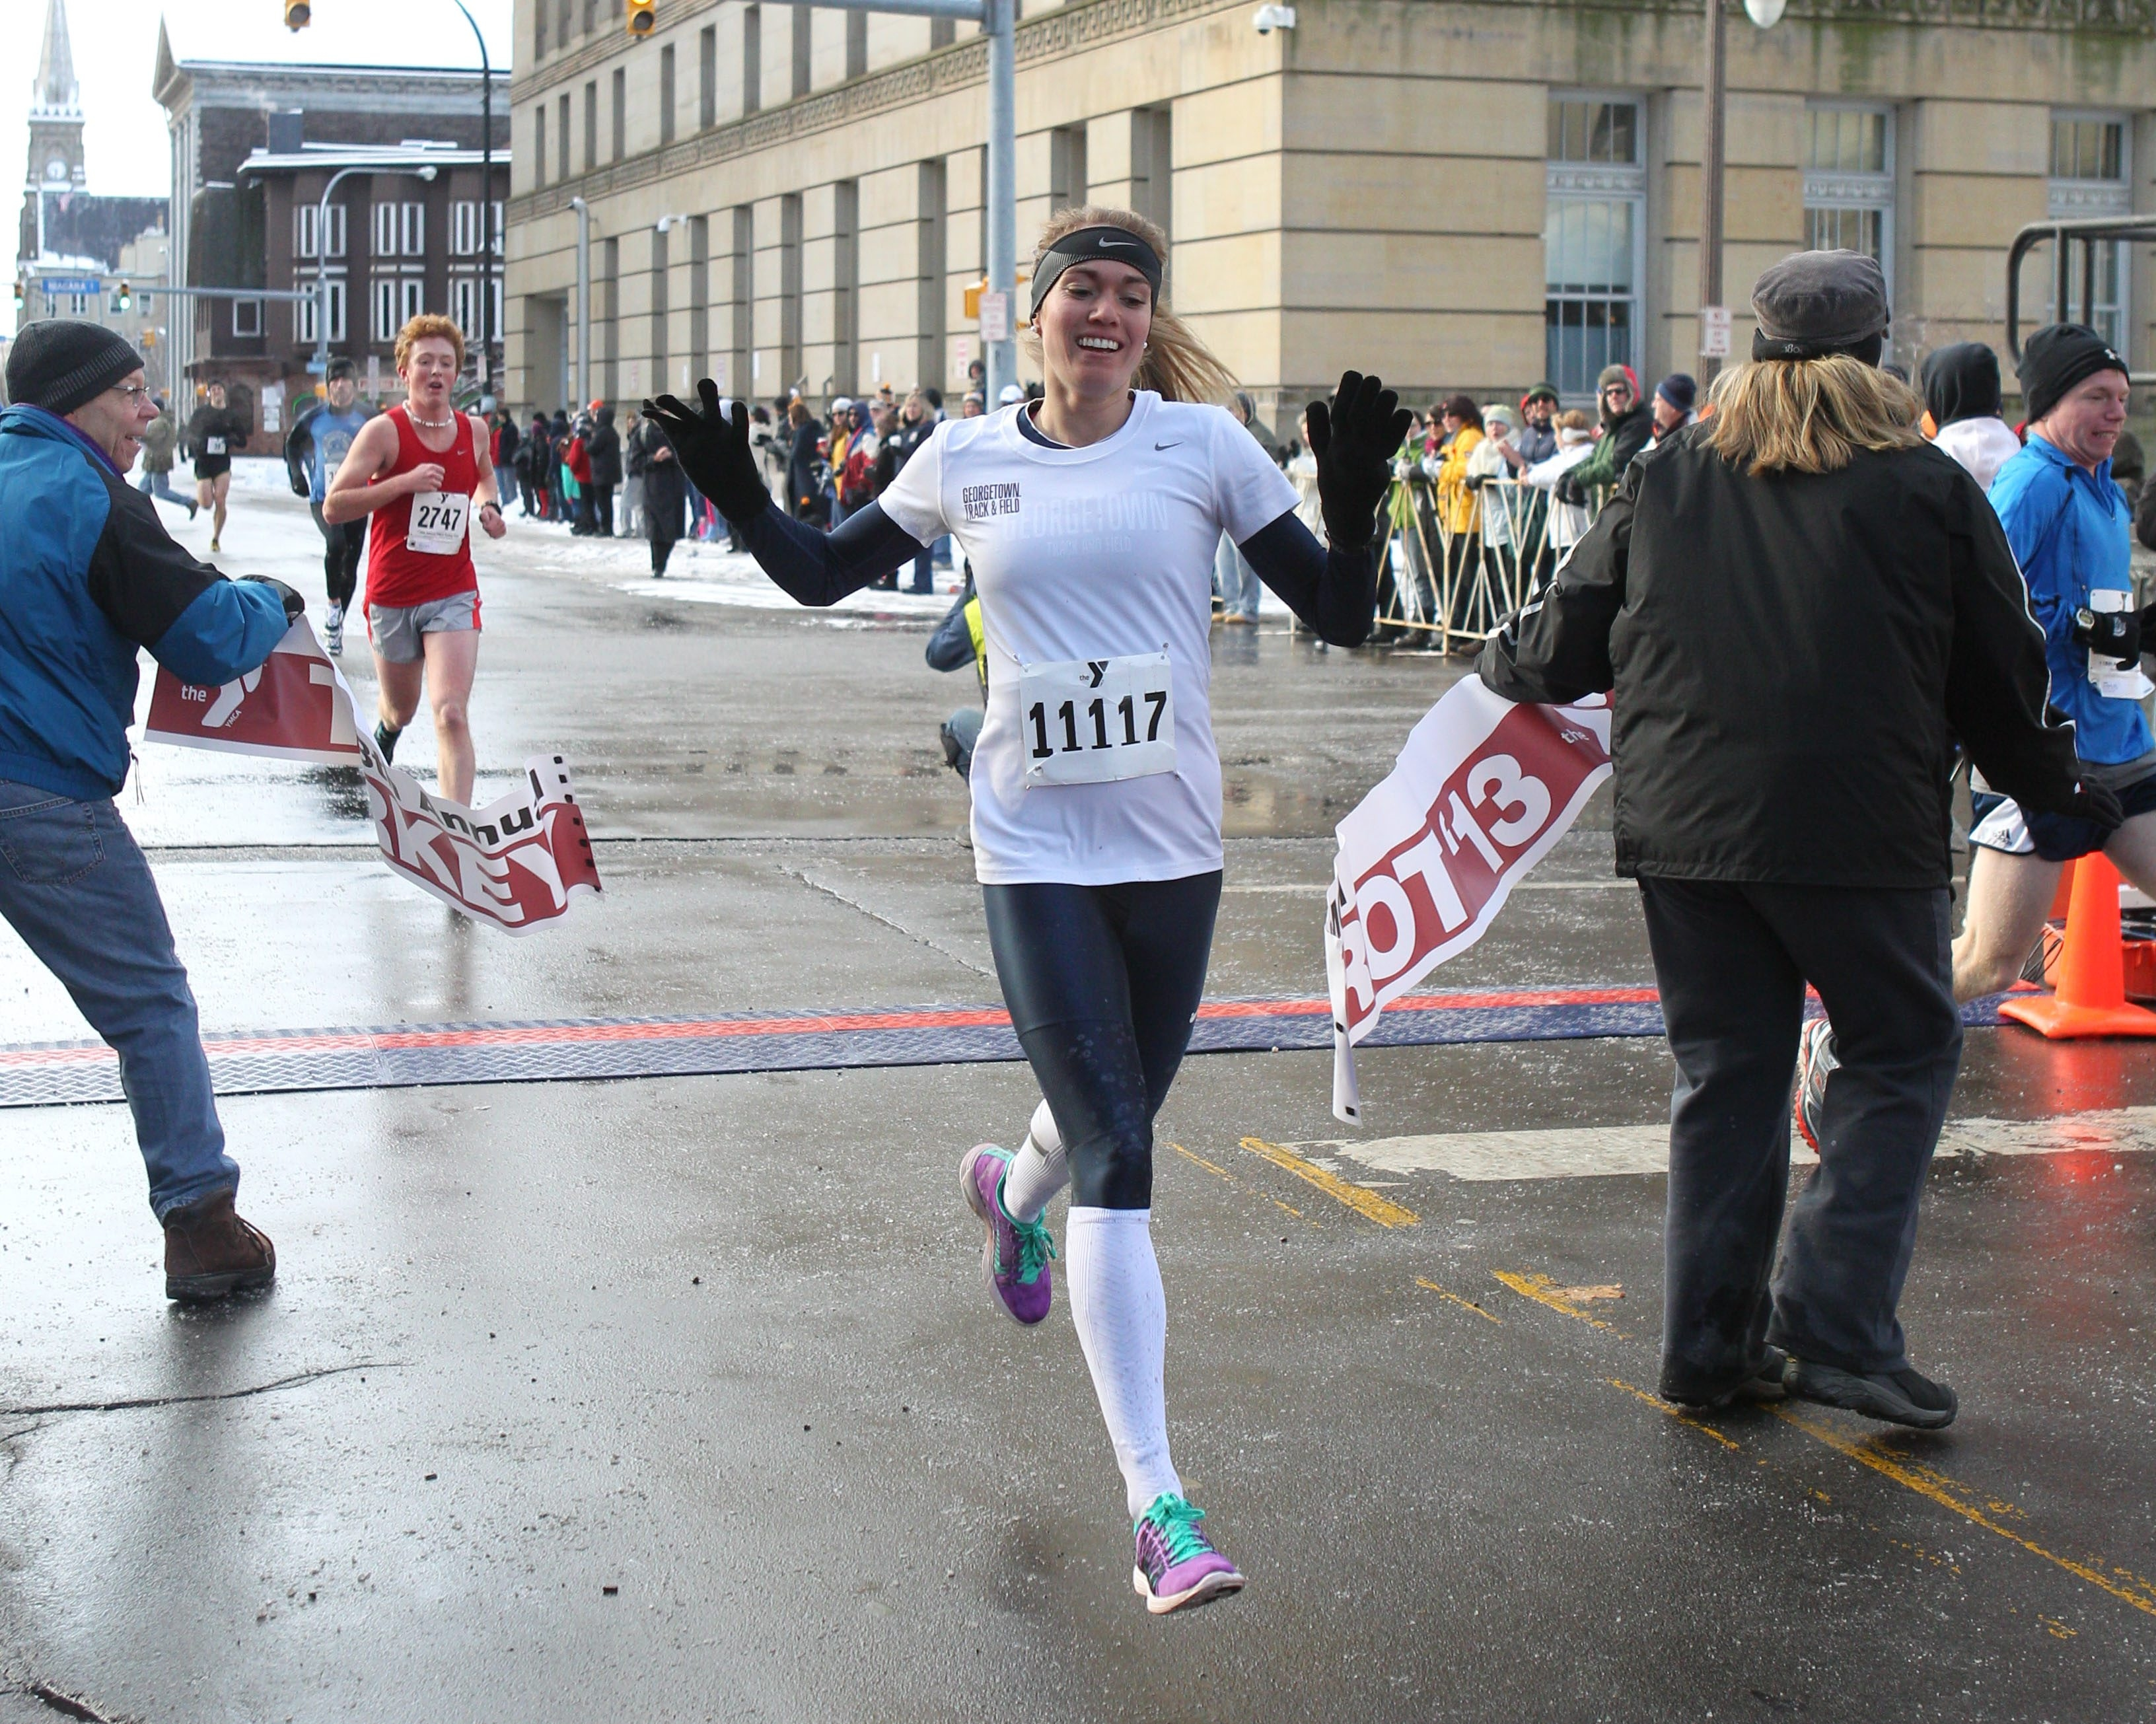 Jake Krolick, left, and Rachel Schneider were the top finishers in the Turkey Trot this year.